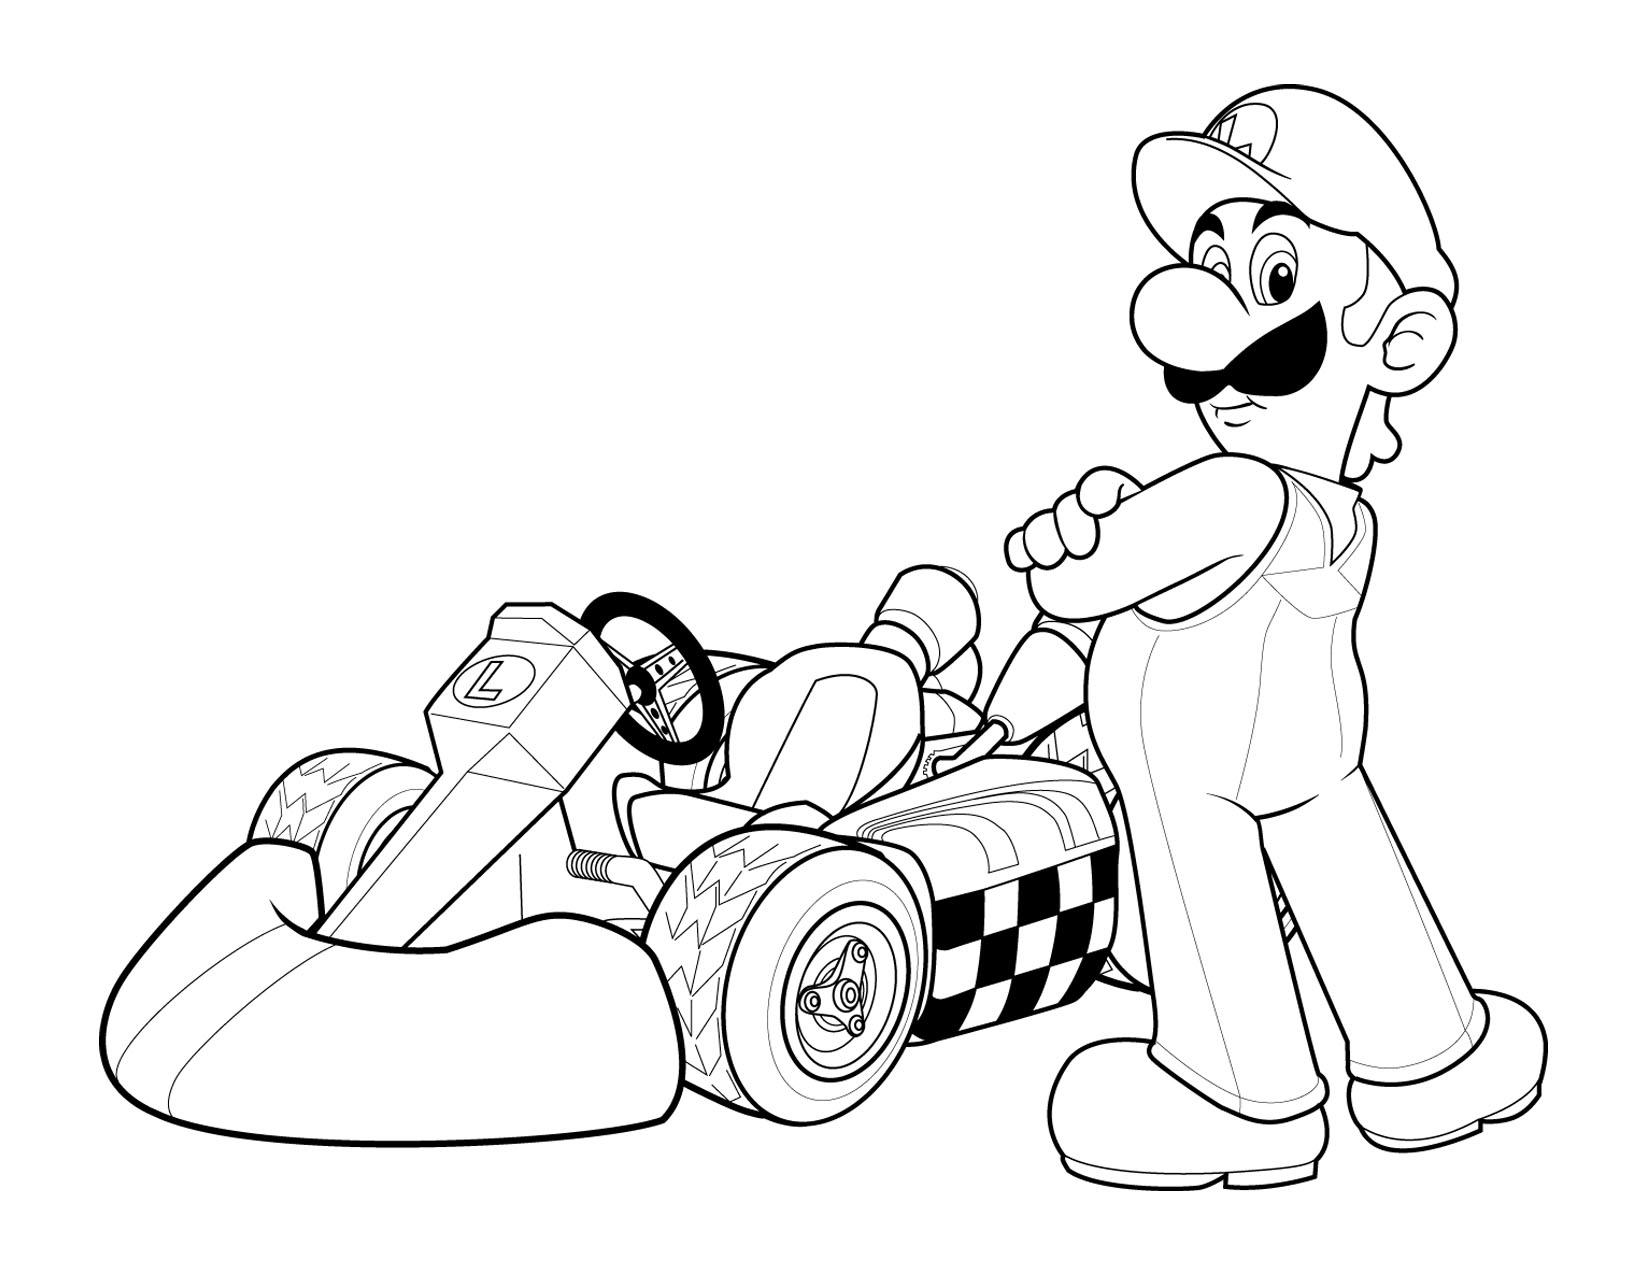 mario kart coloring pages best coloring pages for kids